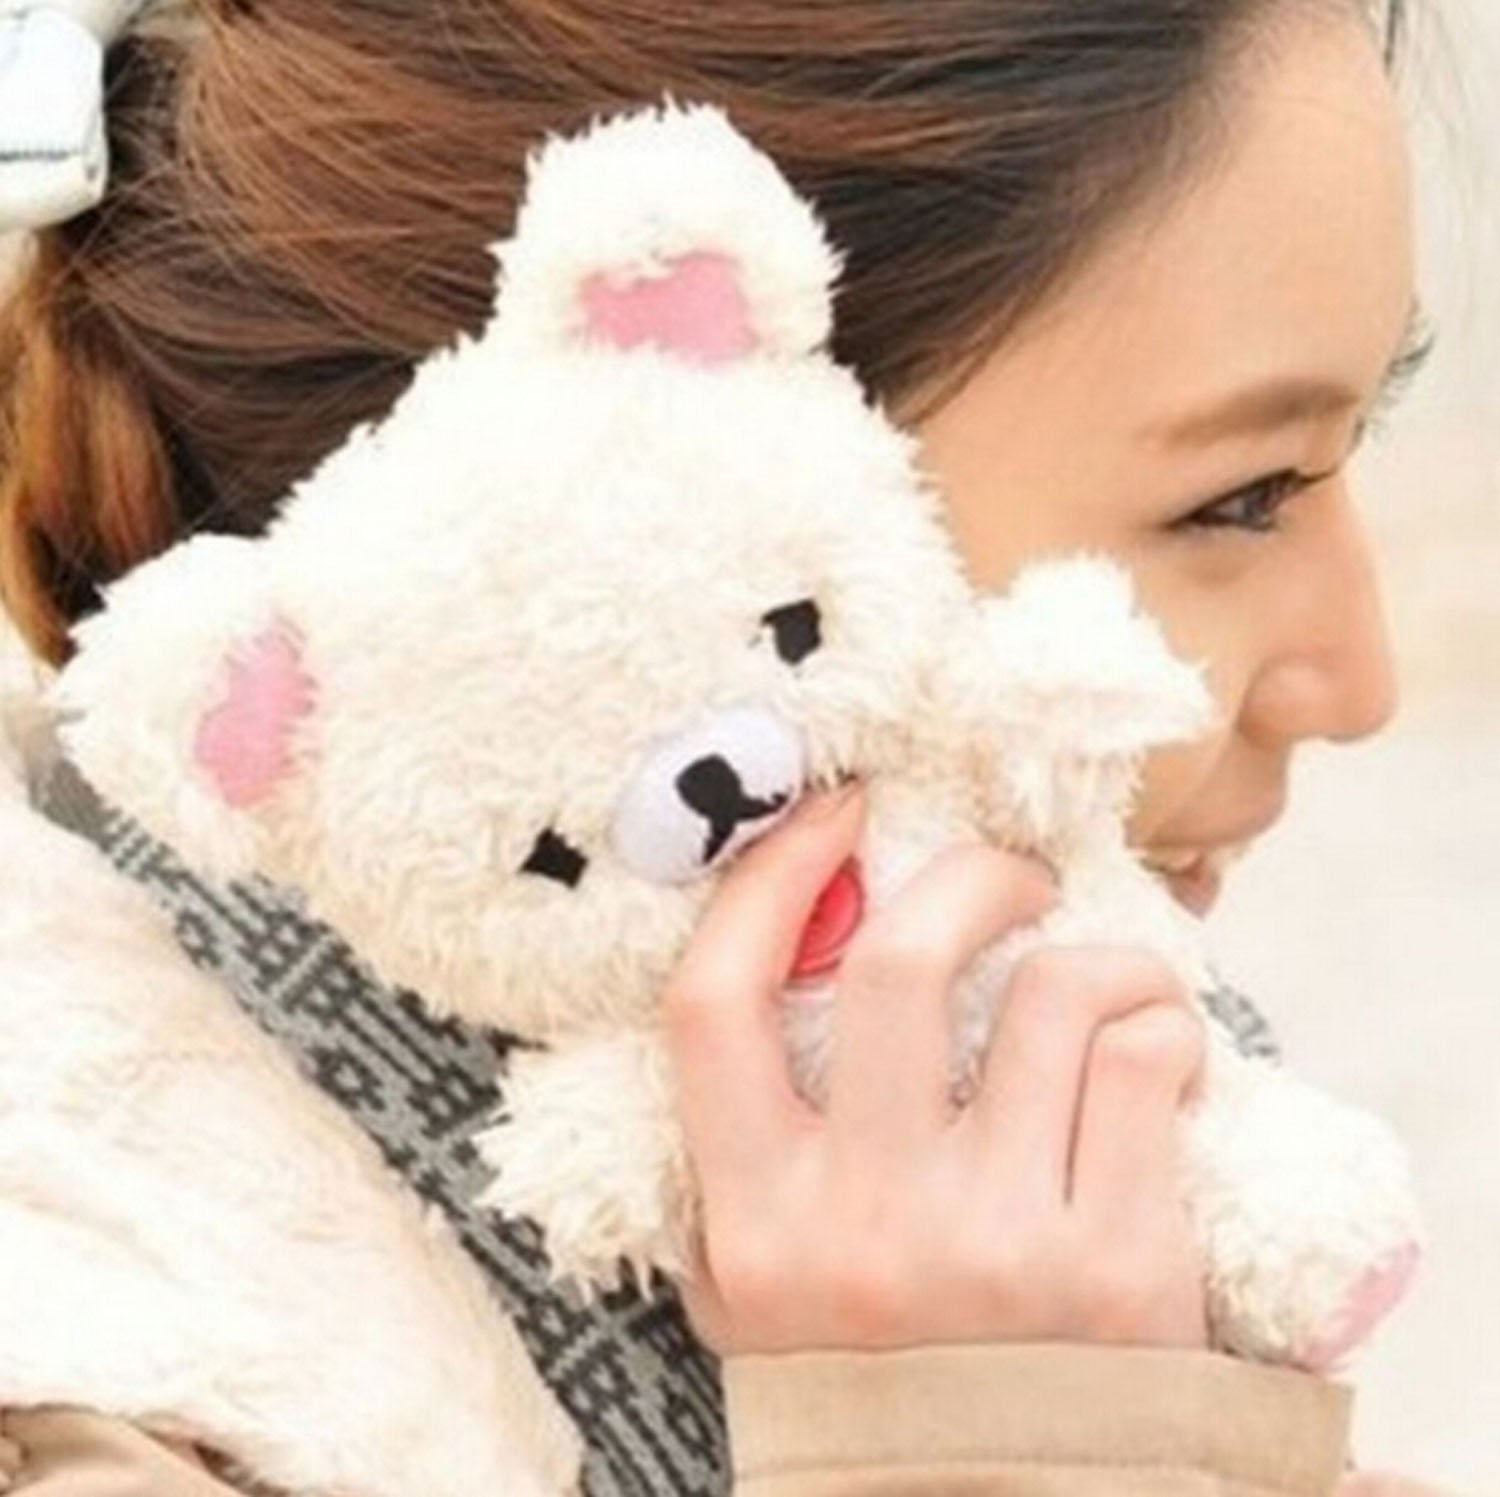 Amazon.com: Galaxy S8 plus case,Emilys fashion style New Cute 3D Lovely Teddy Bear Doll Toy Cool Plush Fitted Back Phone case Cover for Samsung Galaxy S8 ...